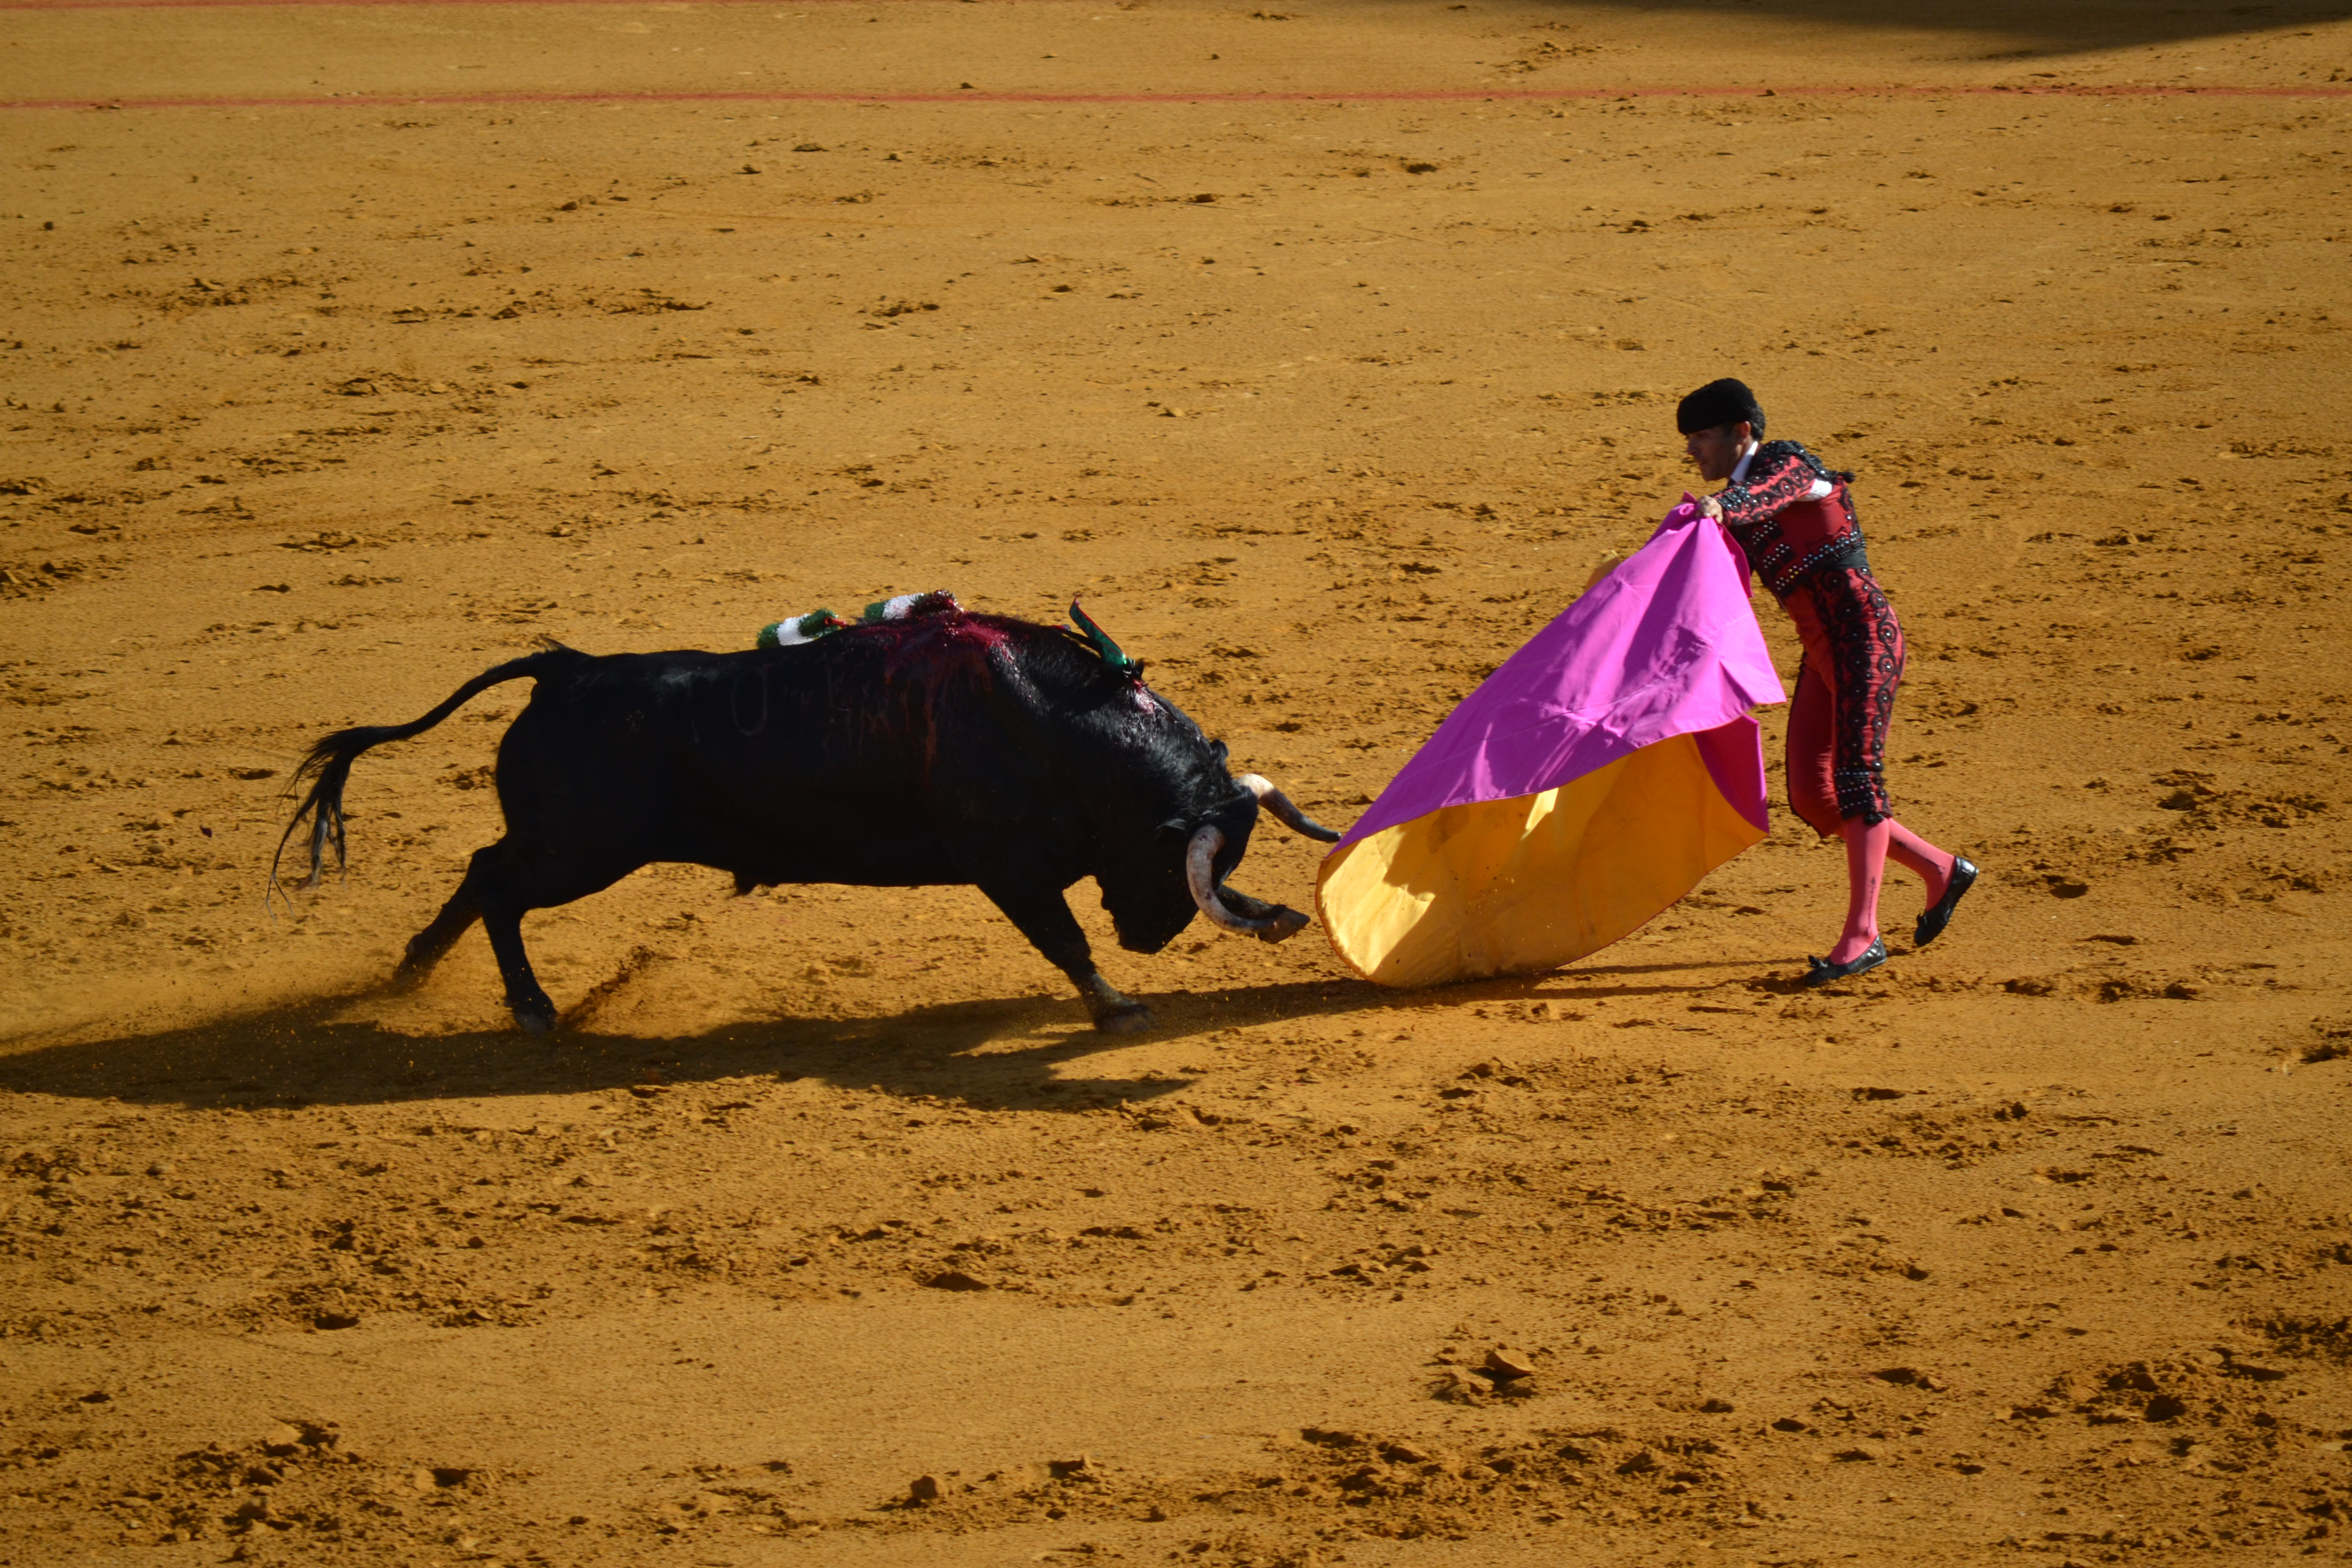 A bullfighter artfully dodges a bloodied bull in Sevilla